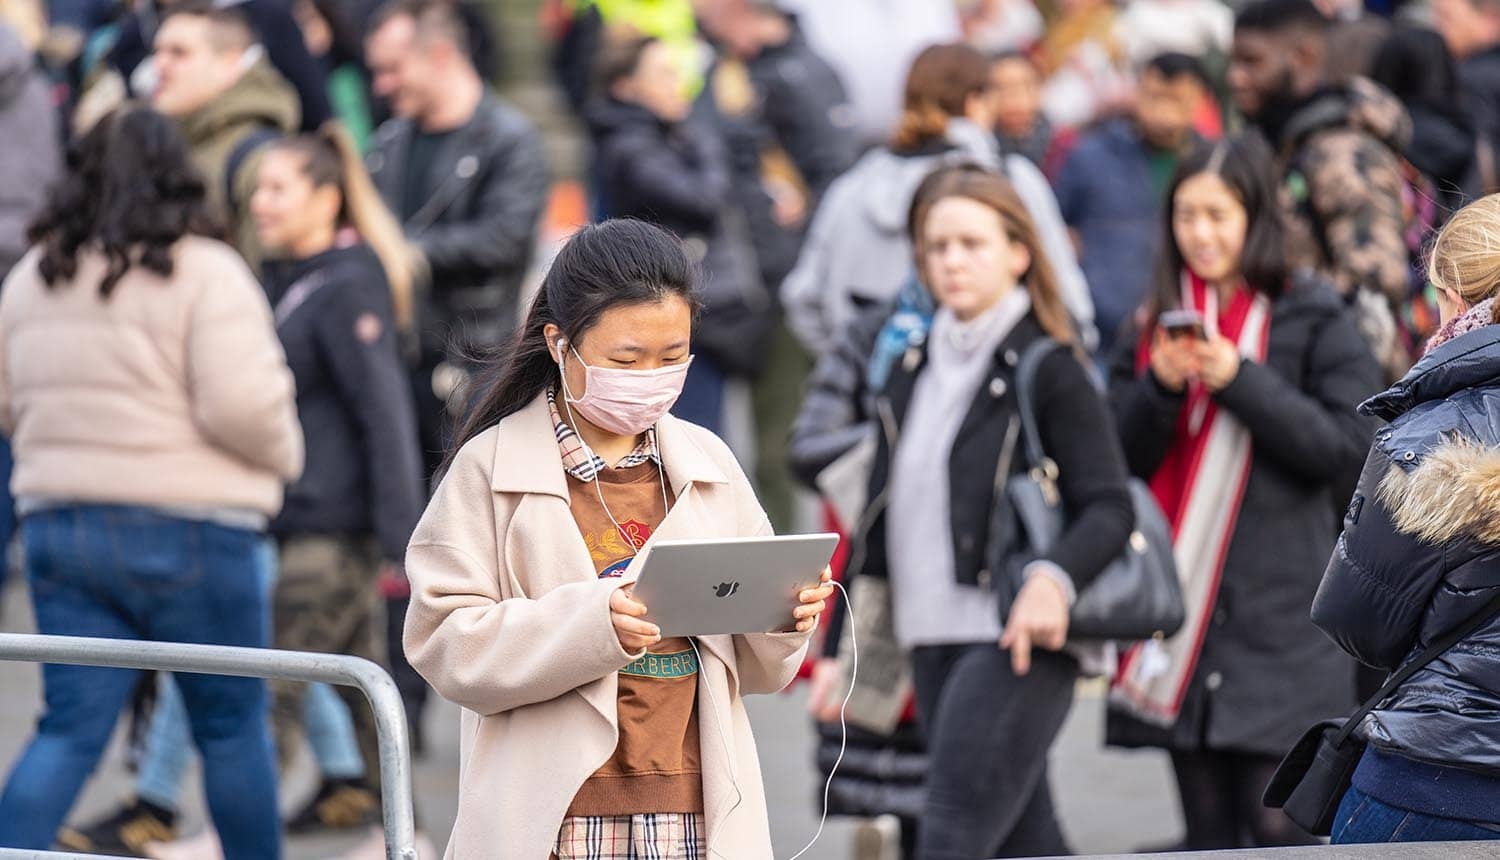 Woman in mask using tablet on street showing the debate over centralized or decentralized tracking for contact tracing app